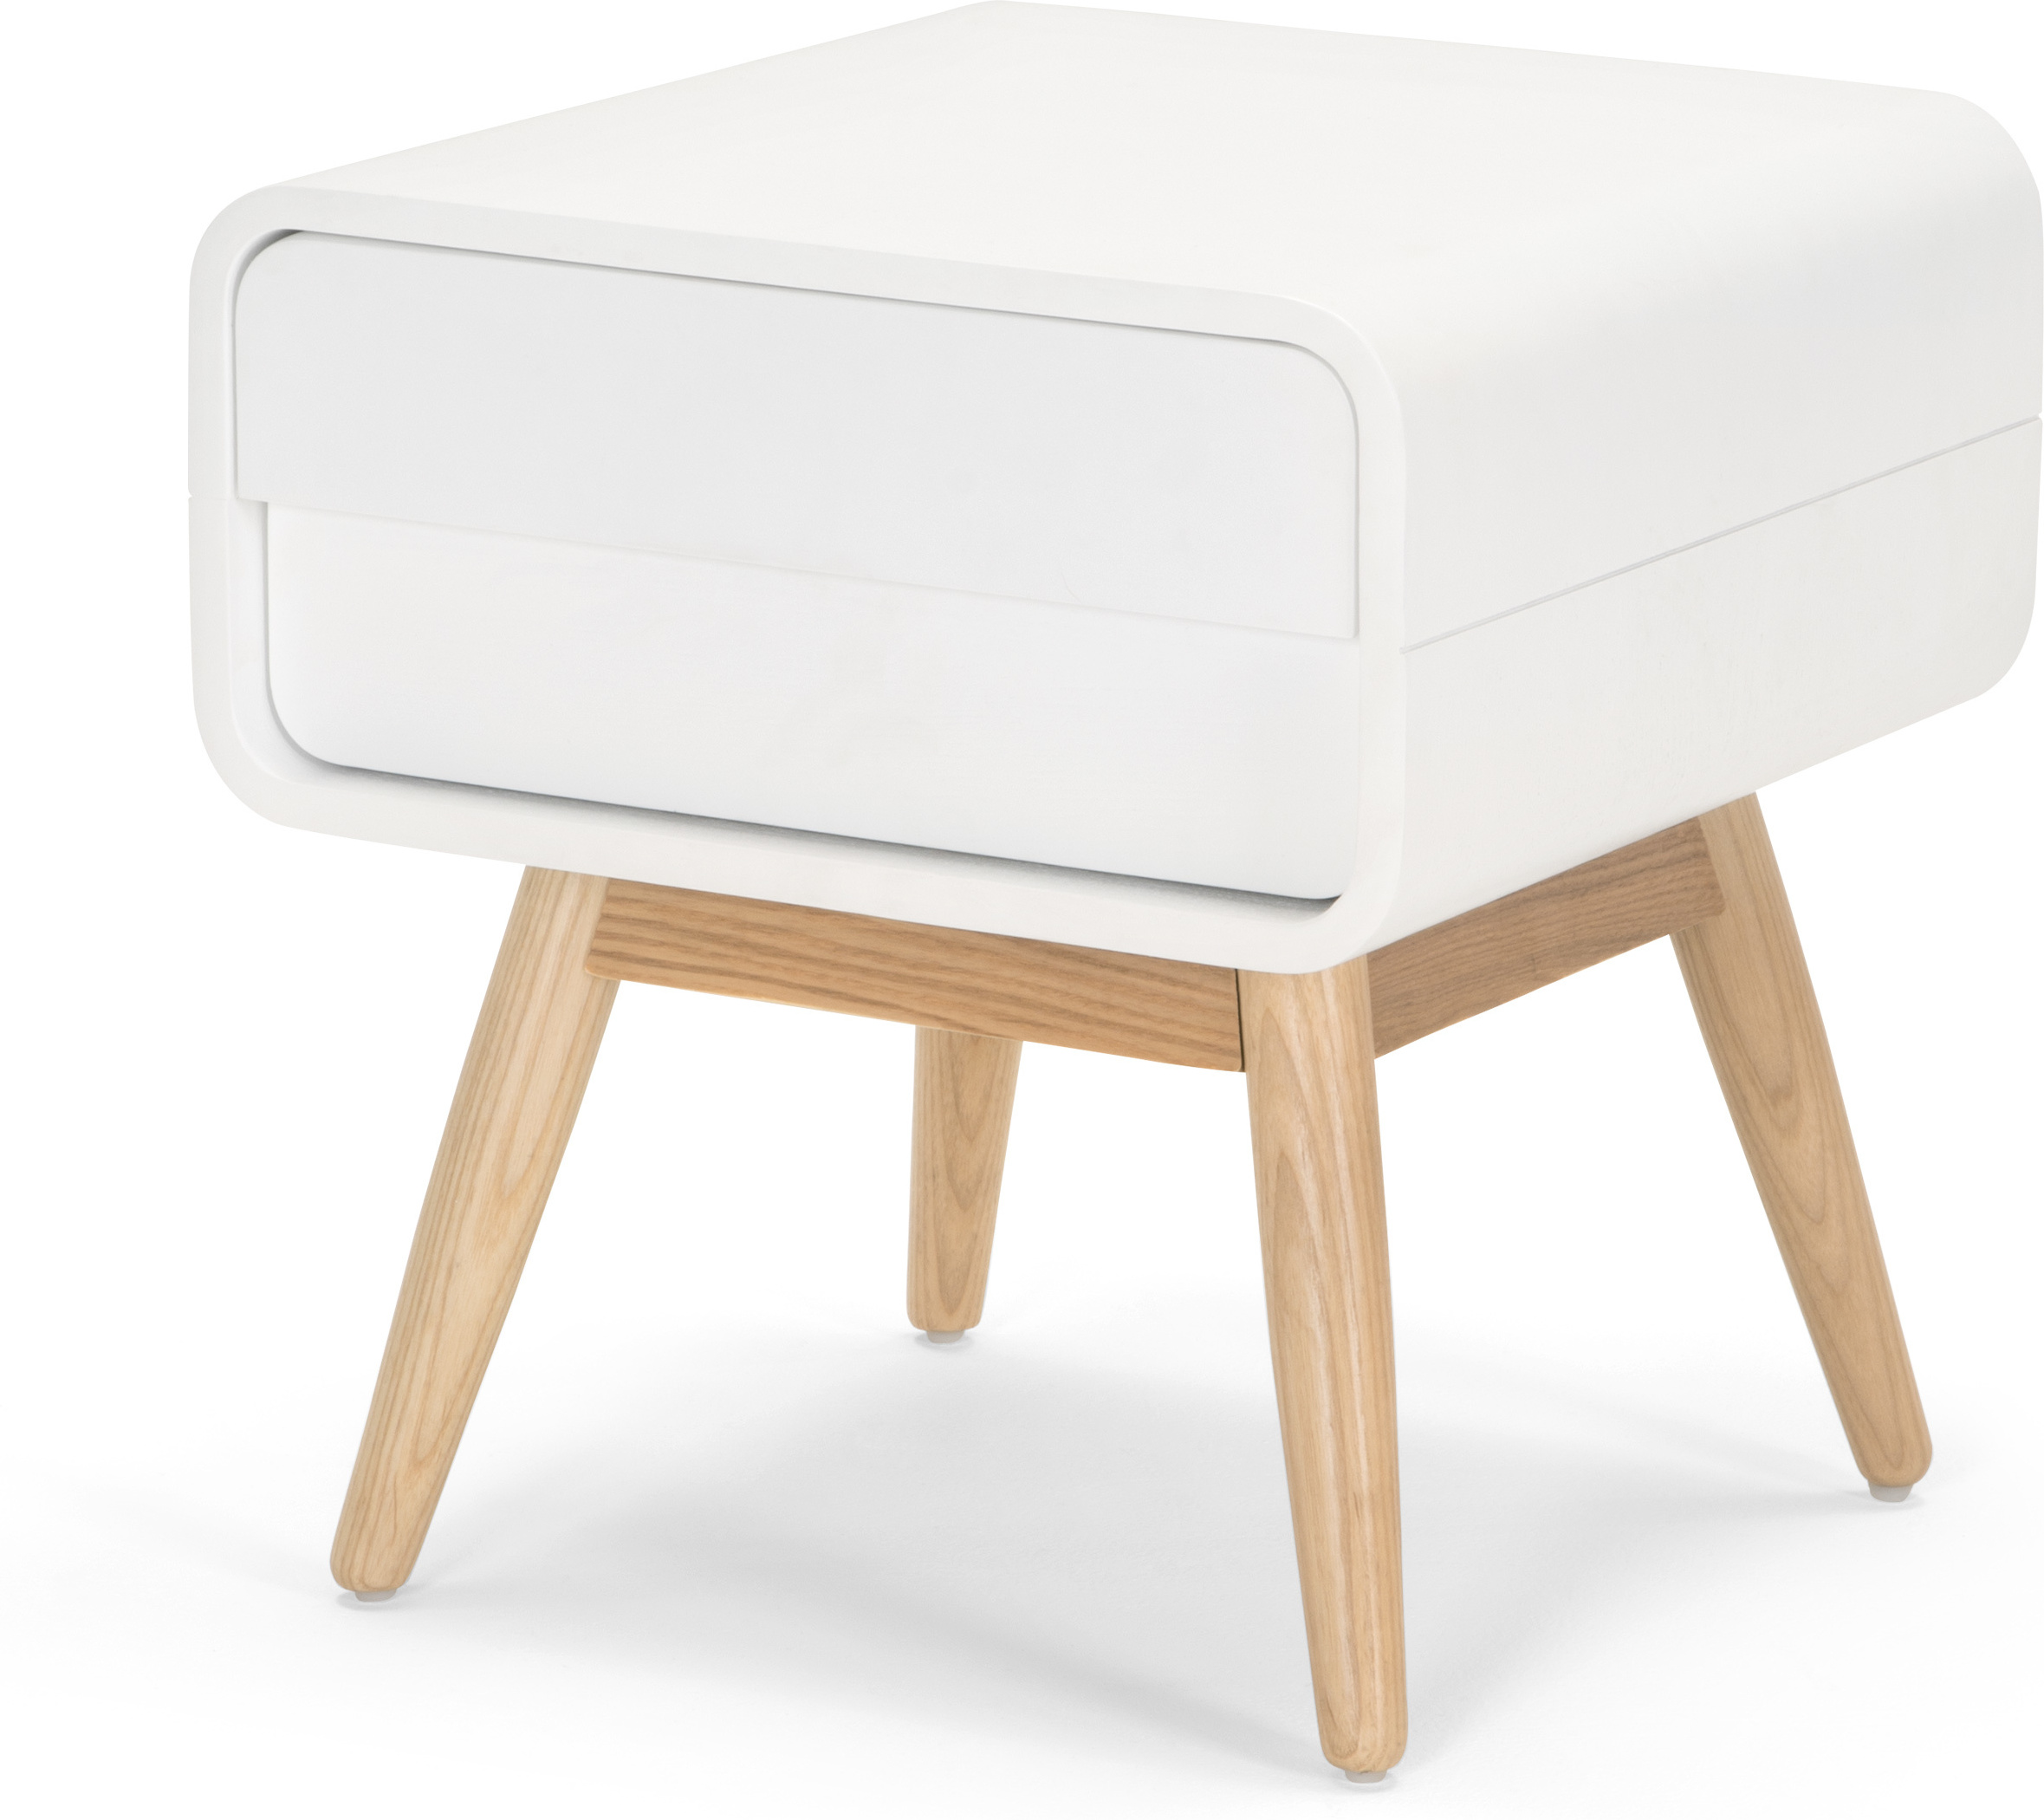 Esme Bedside Table White and Ash